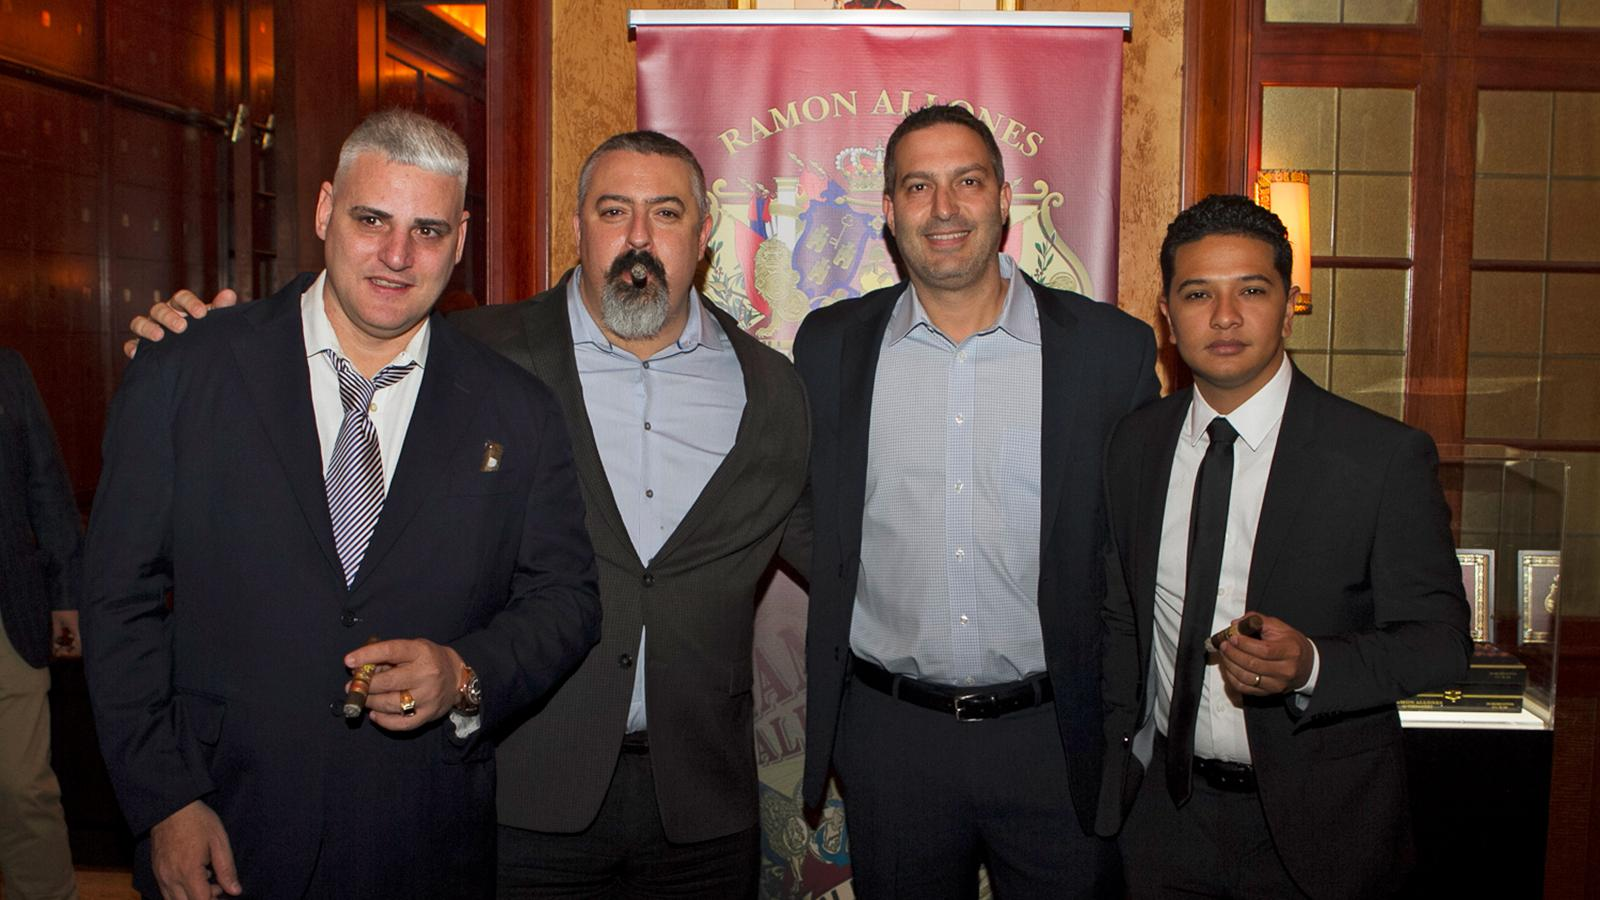 Ramon Allones By AJ Fernandez Debuts In NYC